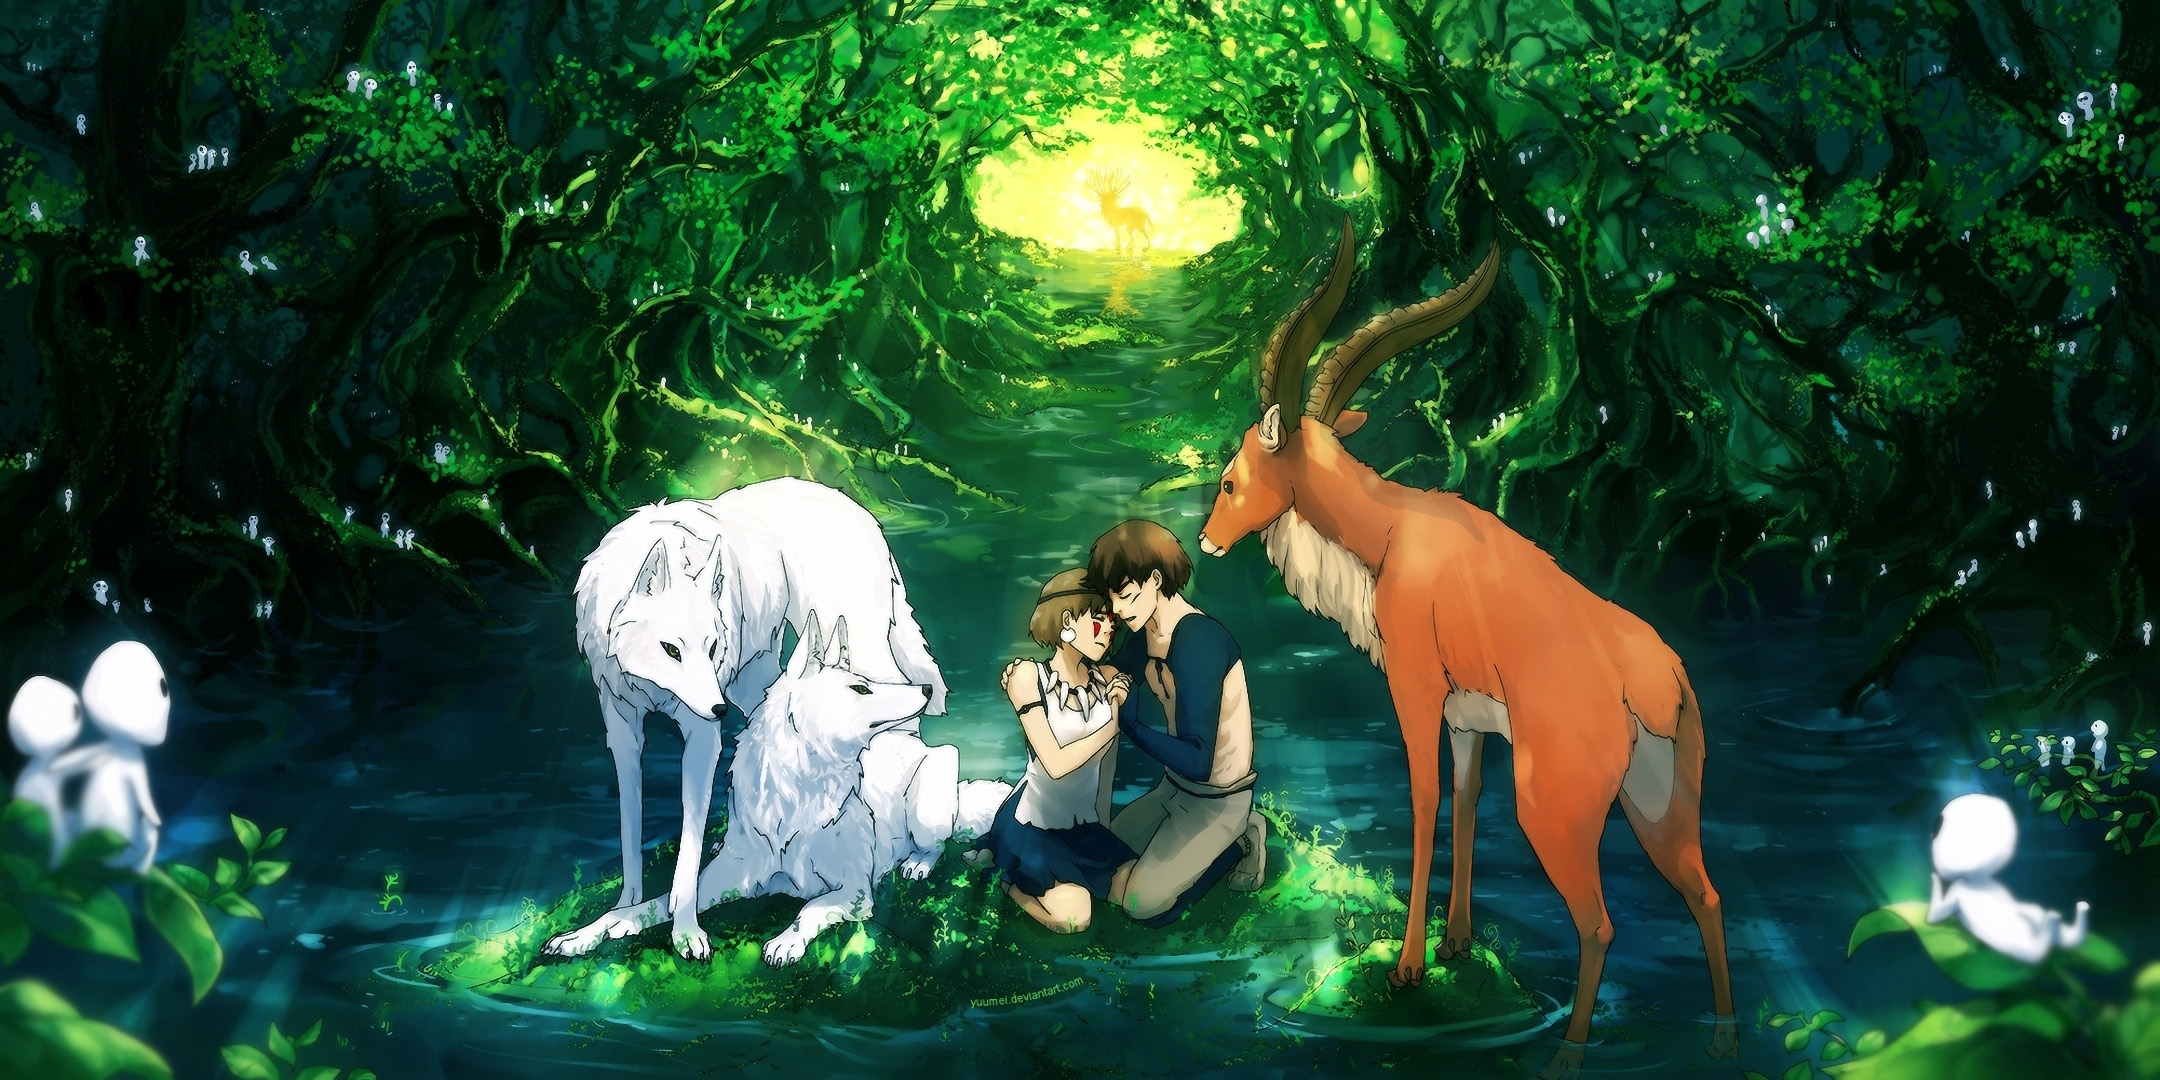 Ashitaka-And-San-With-Wolfs-Princess-Mononoke-%C3%971080-wallpaper-wp3602750